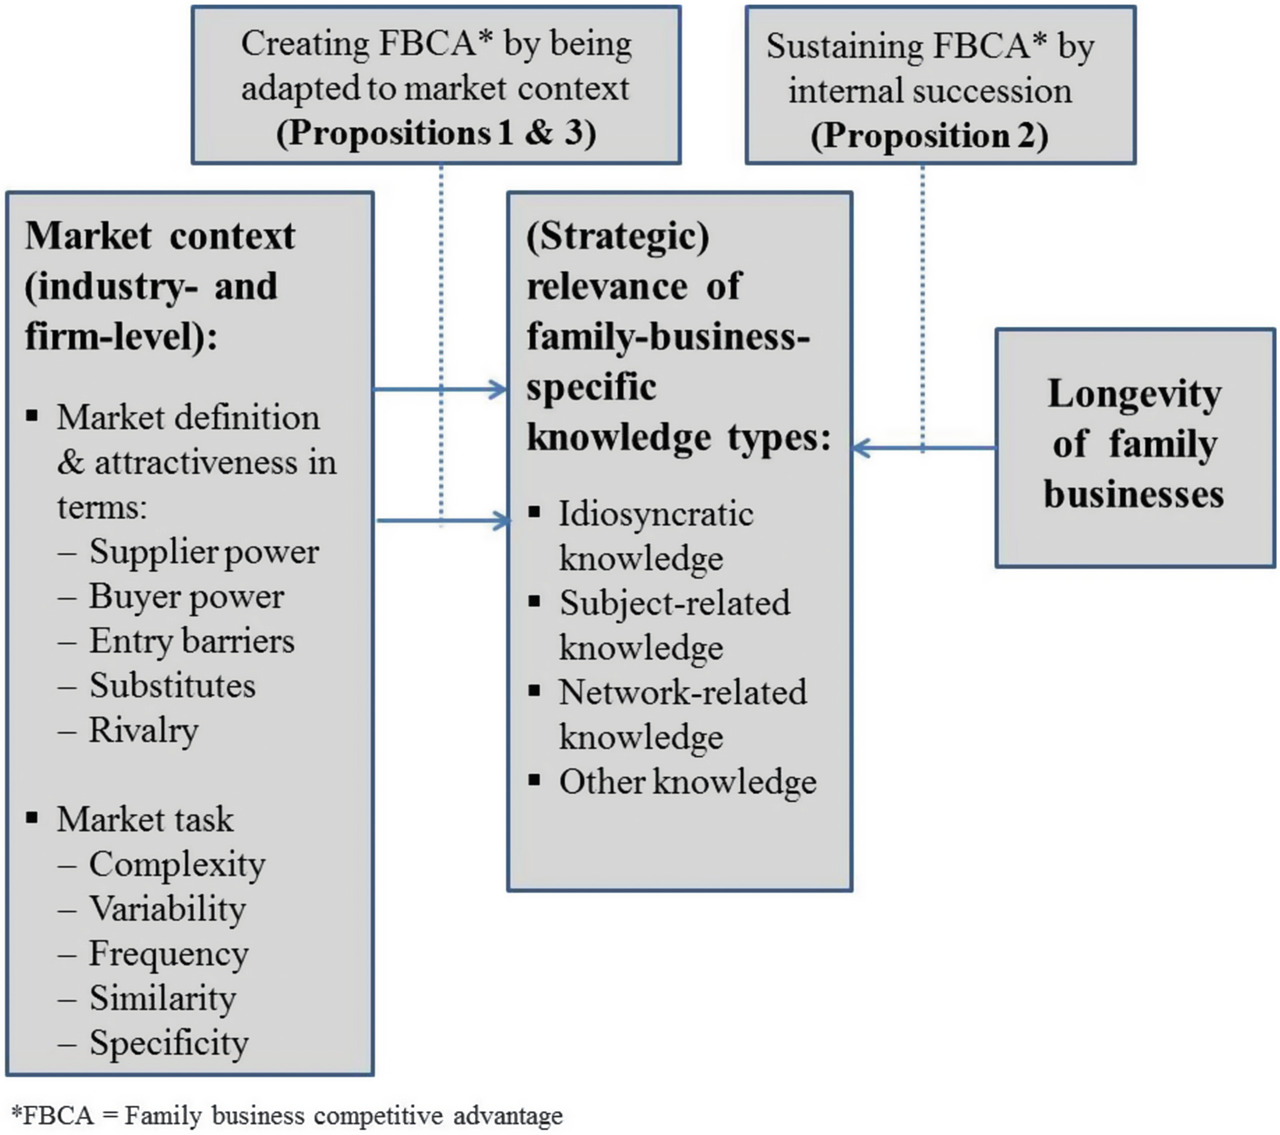 Competitive Advantage in Long-Lived Family Firms